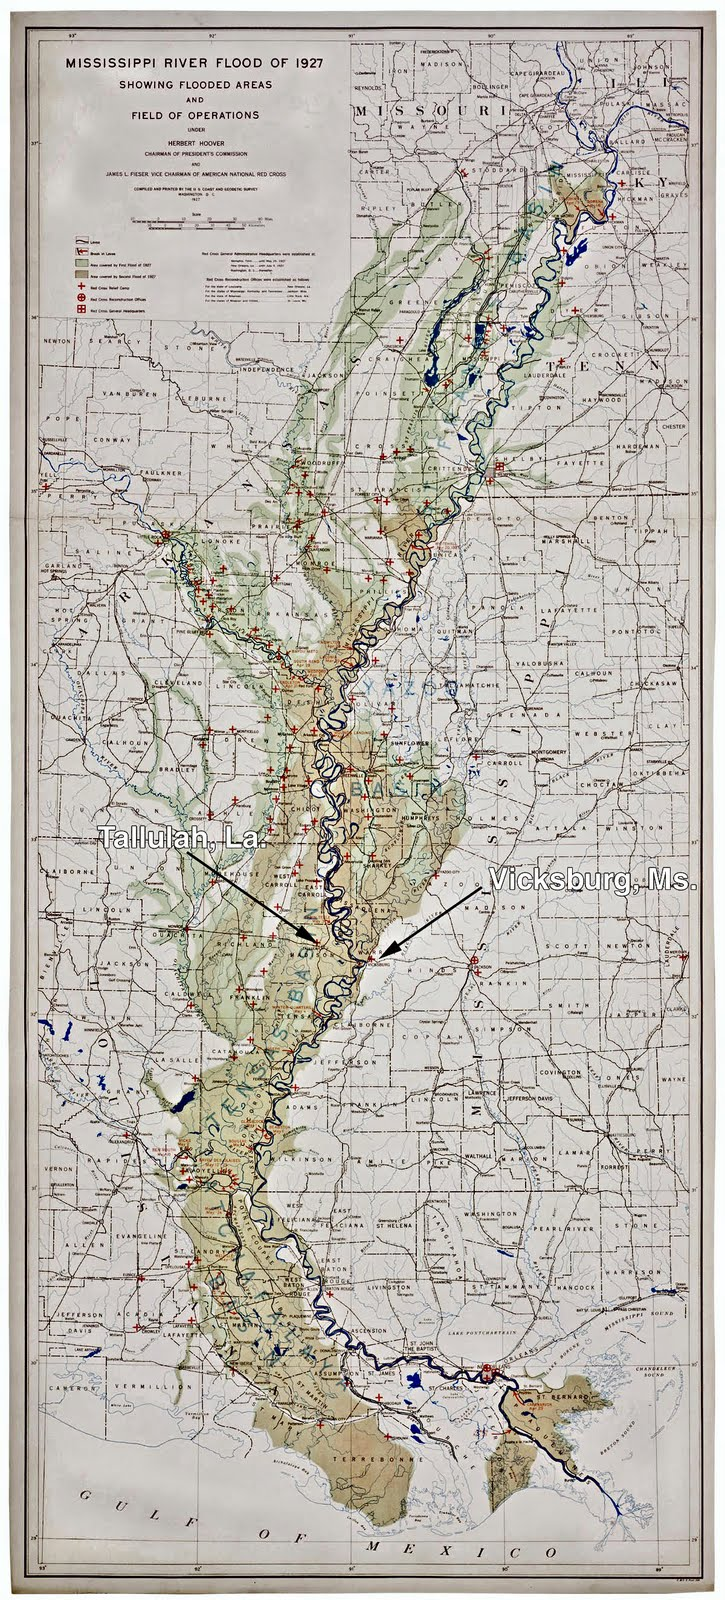 Oil Electric Vicksburg Shreveport Louisiana Railroad Flooded 1927 Buick Wiring Diagram Zone Of The Great Flood Followed By A Second Crest Lighter Green Also In Click On Map When Open Magnifying Glass Symbol